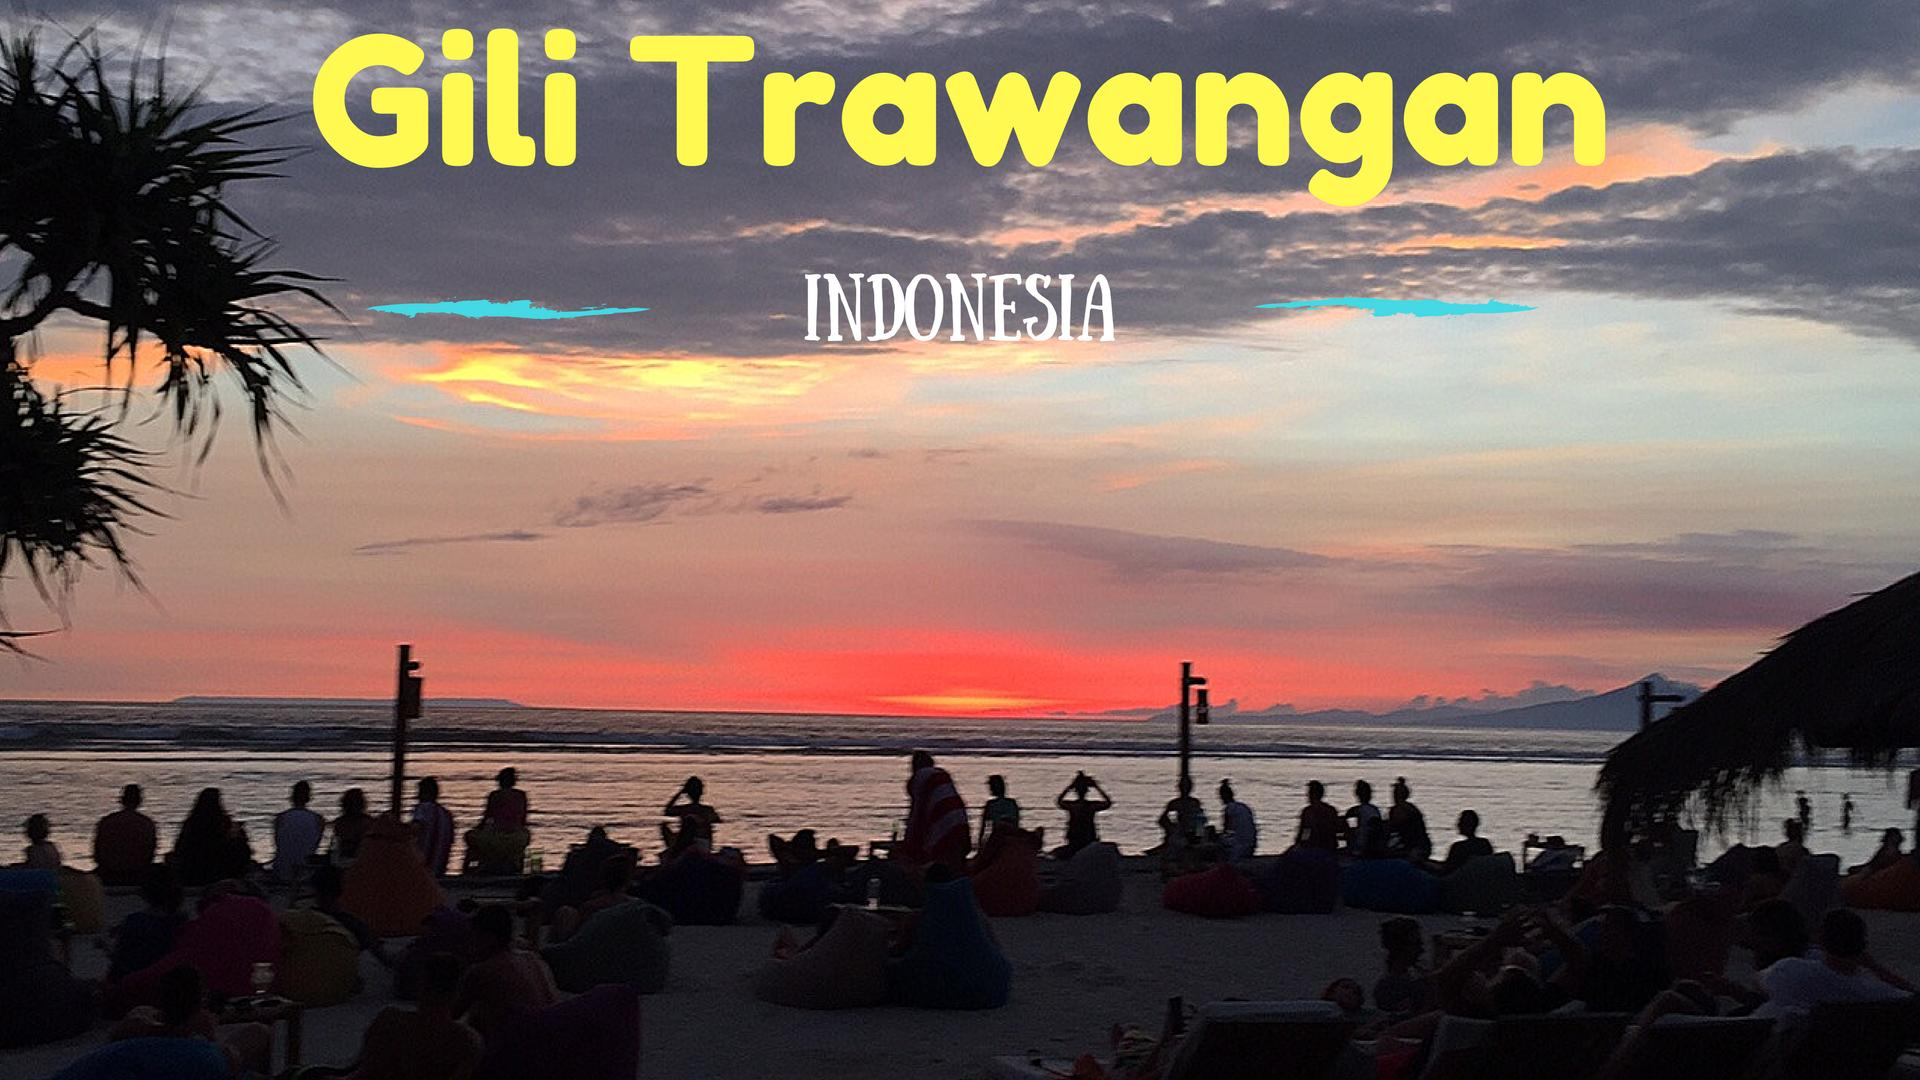 Indonesia: Have Fun in Gili Trawangan Island